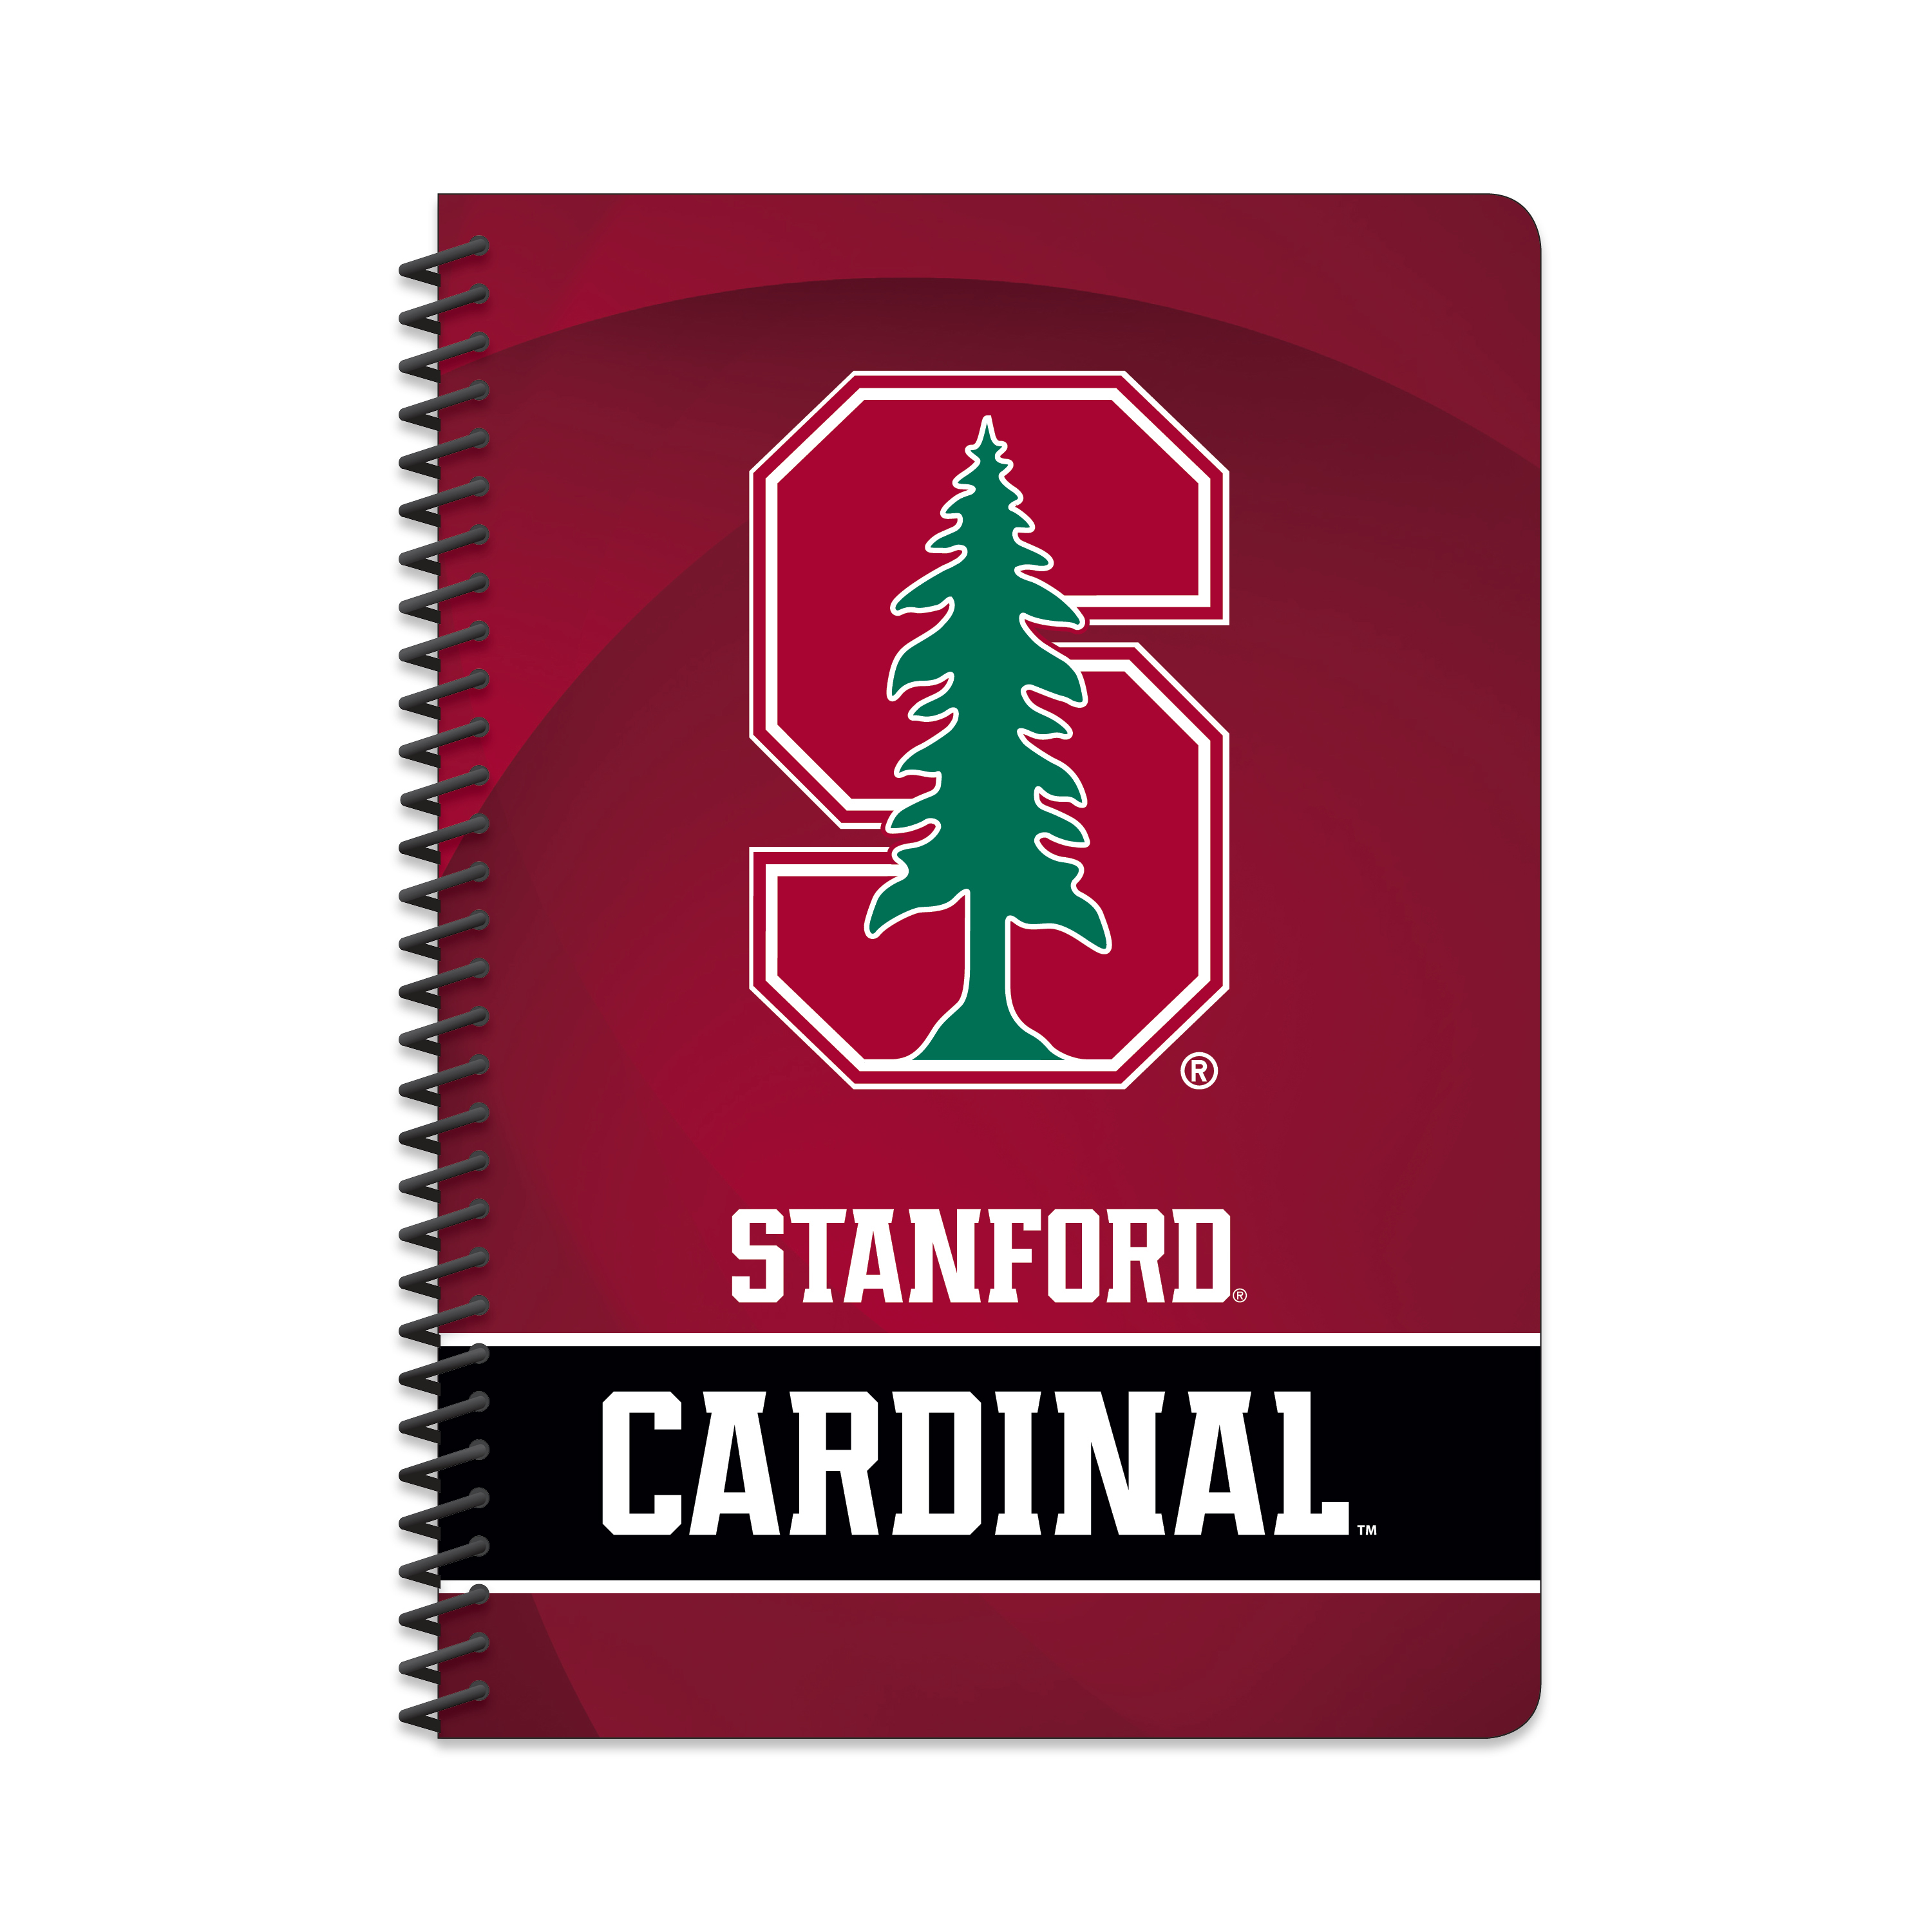 "NCAA Stanford Cardinals Spiral Notebook, 5"" by 7"", 80 Sheets, College Rule"